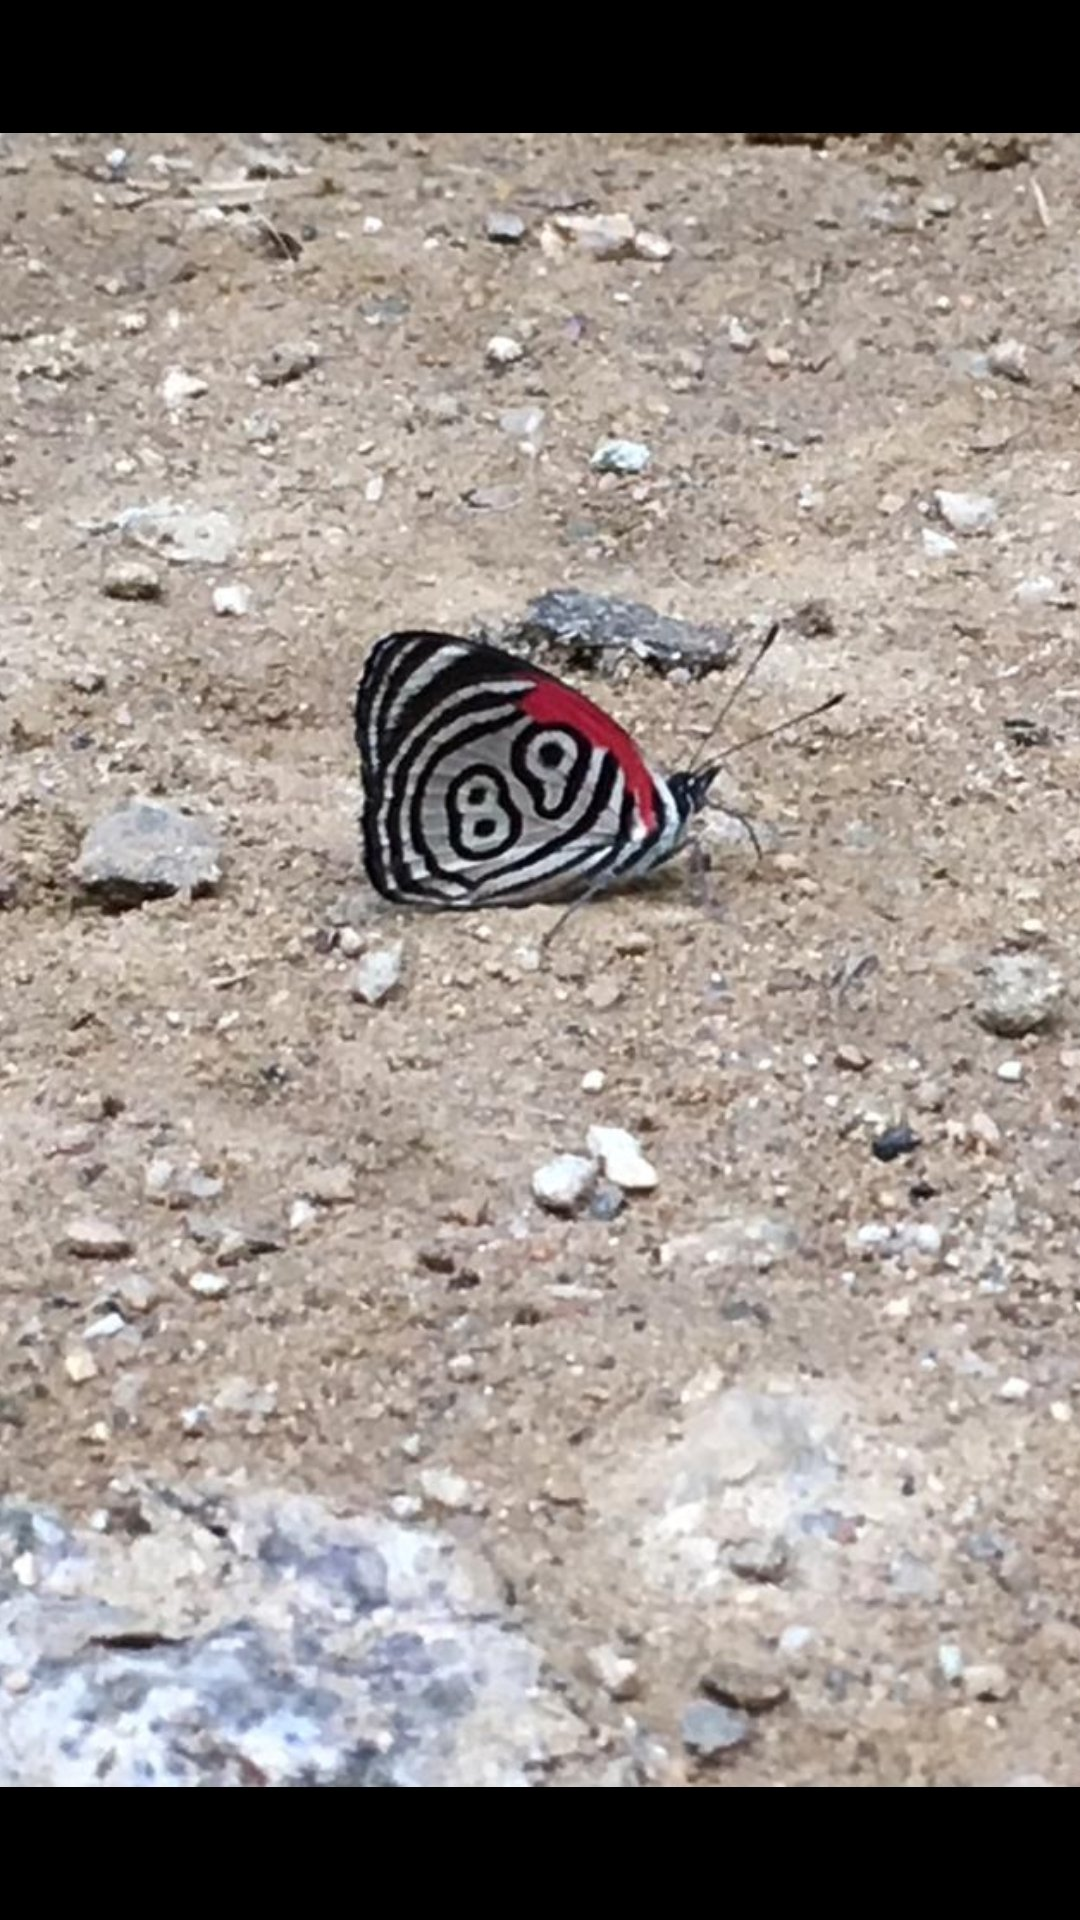 This butterfly with an 89 in its wings.